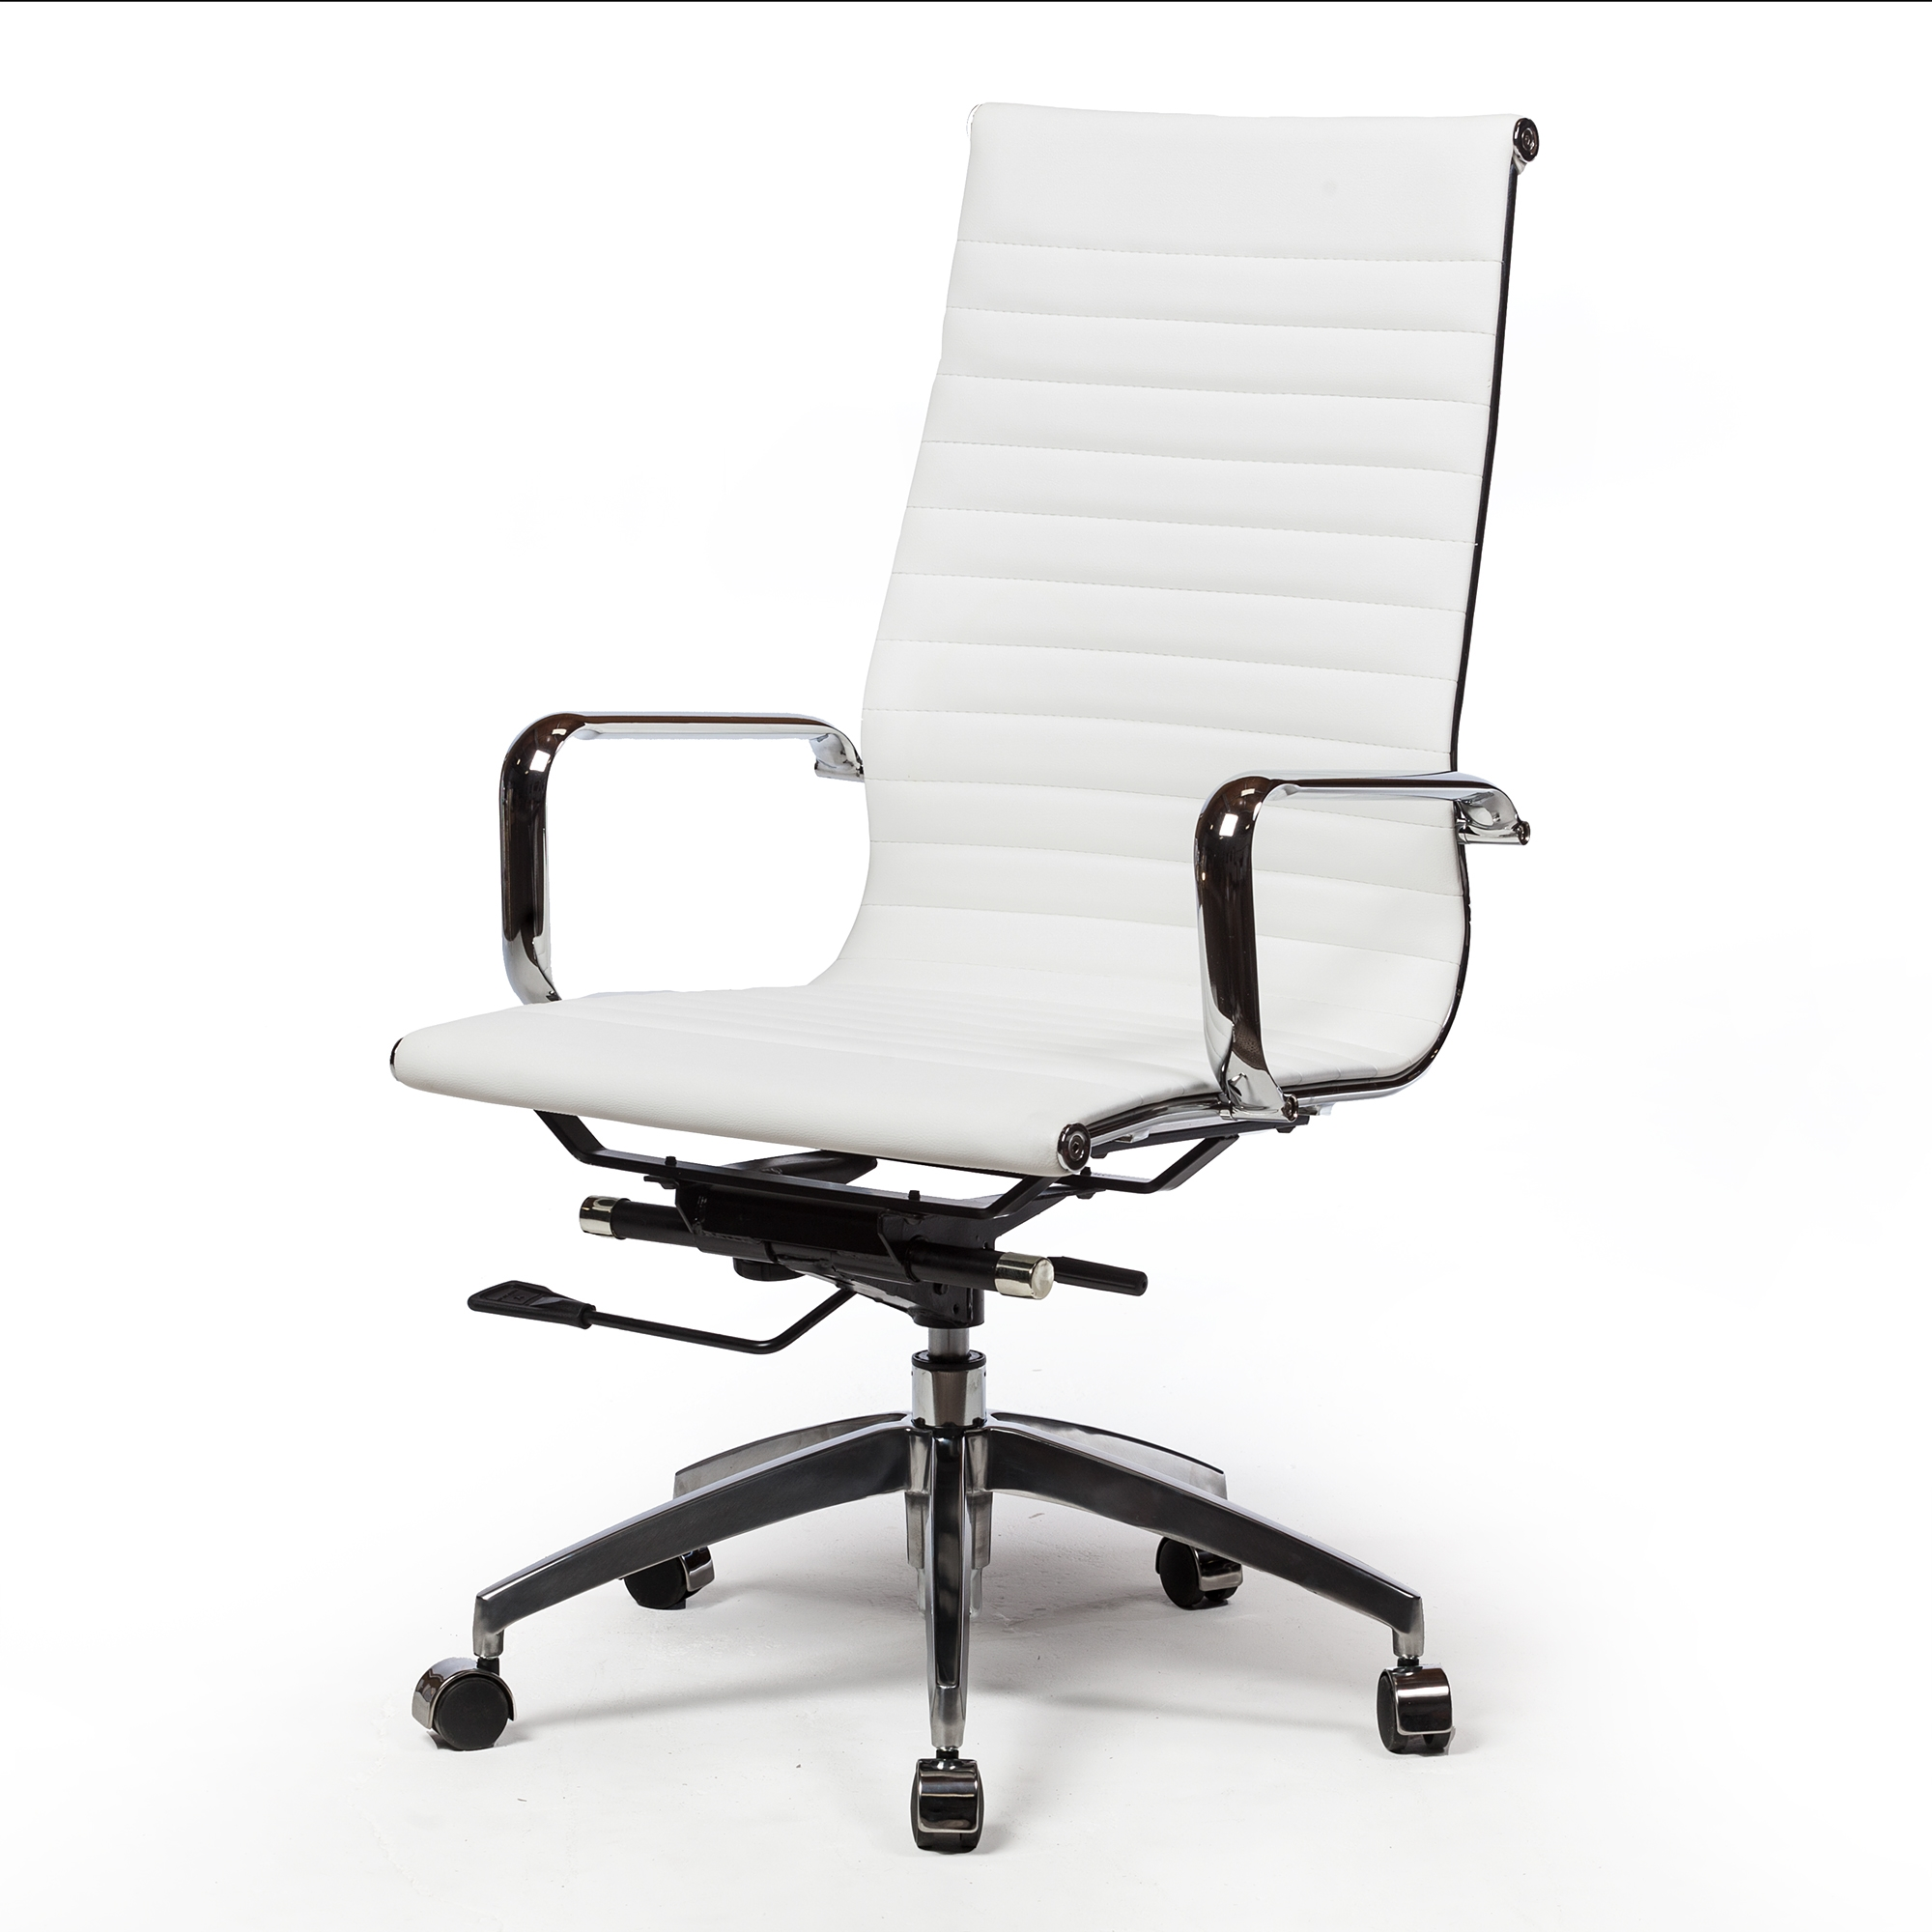 Mid-Century Modern Office Chair in White, The Khazana Home Austin Furniture  Store